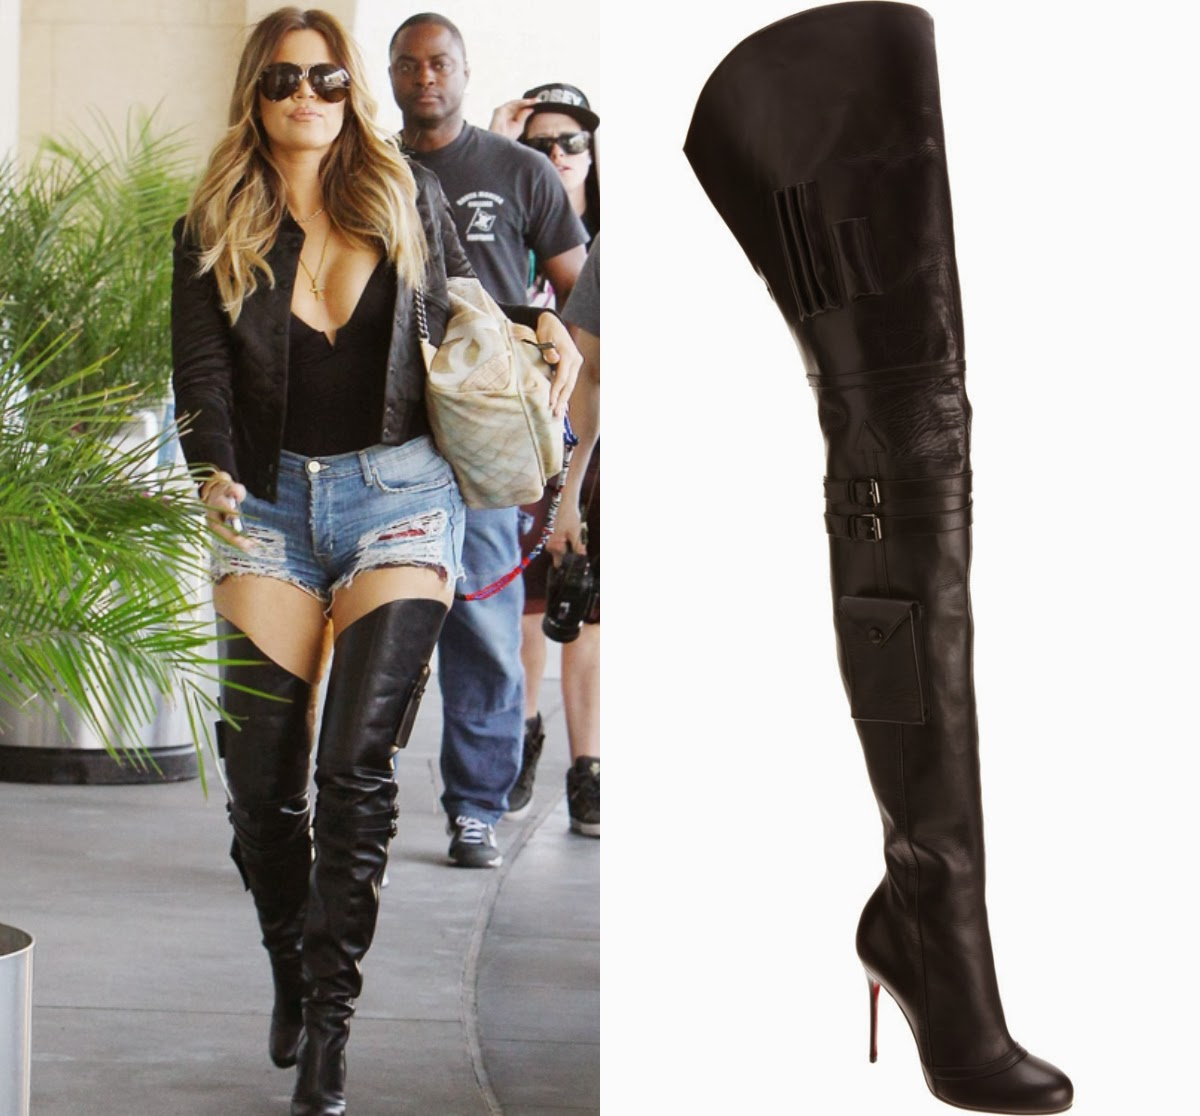 Cheap Thigh High Black Boots rZPHNSqR